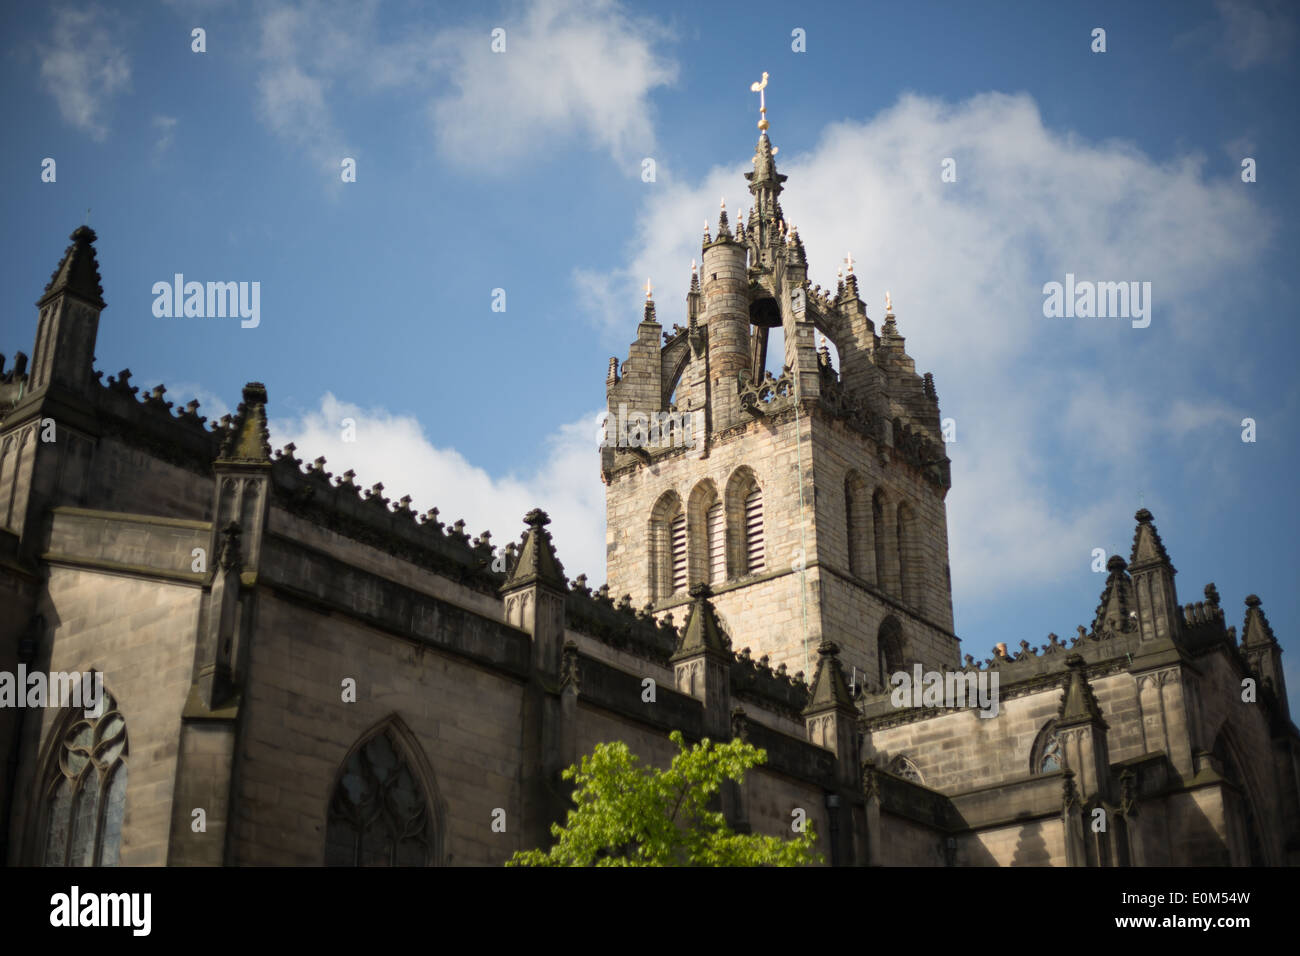 St. Giles Cathedral, Royal Mile / on High Street, in Edinburgh, Scotland - Stock Image